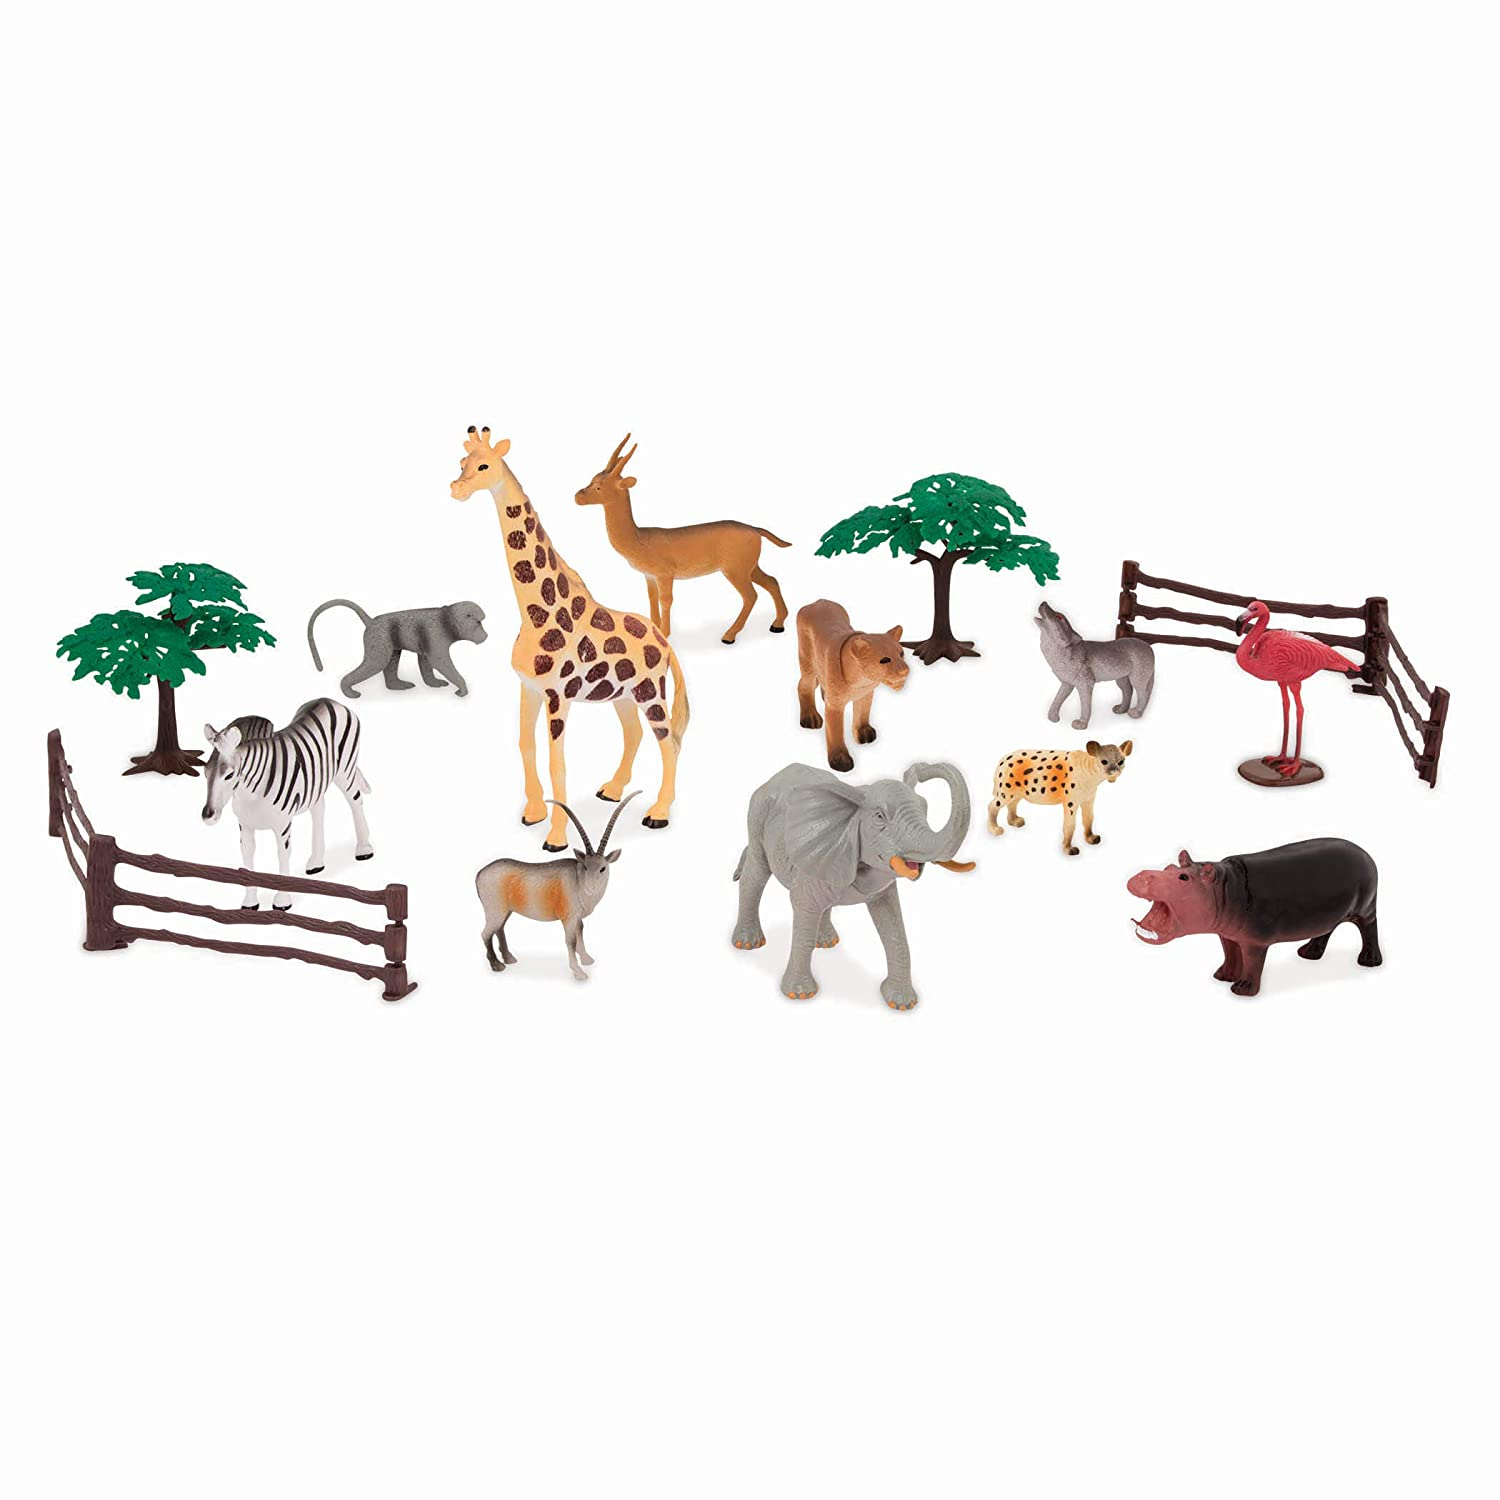 Realistic Plastic Cows Toys /& Farm Animal Toys for Kids 3+ 60 Pc Country World Terra by Battat